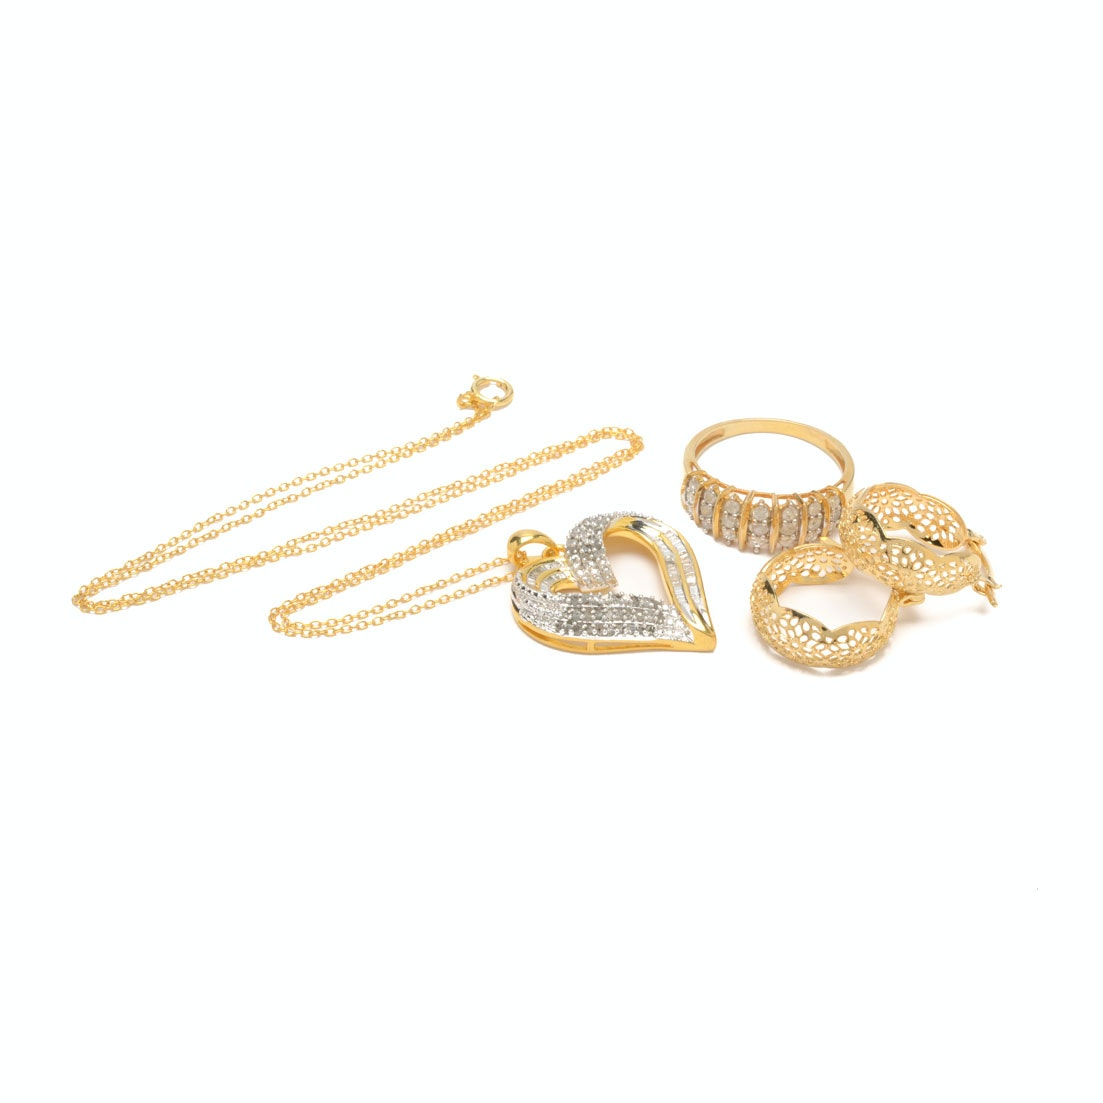 Gold Wash Over Sterling Silver and Costume Diamond Jewelry